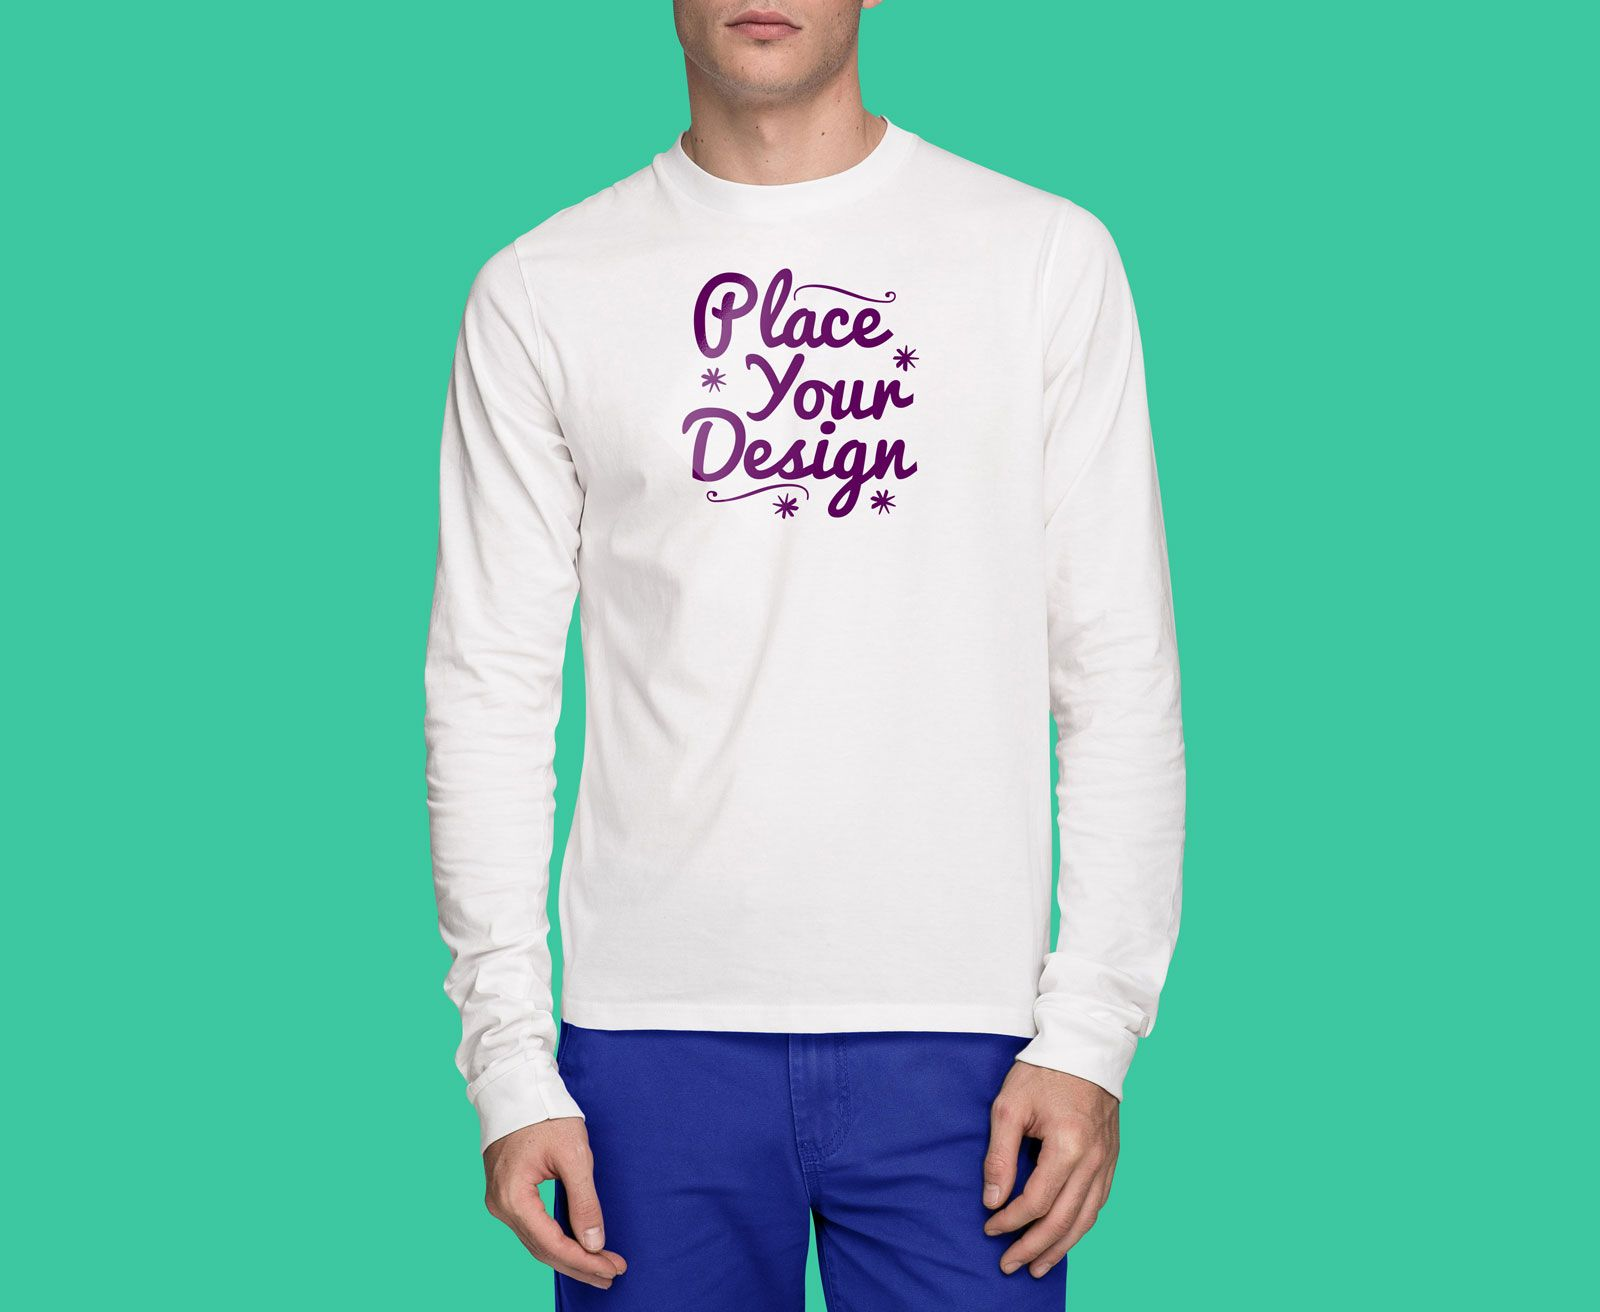 Download A Front And Backside Full Sleeves T Shirt Mockup For Online T Shirt Stores As Well As For Designers To Present Ts Shirt Mockup Tshirt Mockup Full Sleeve Tshirt